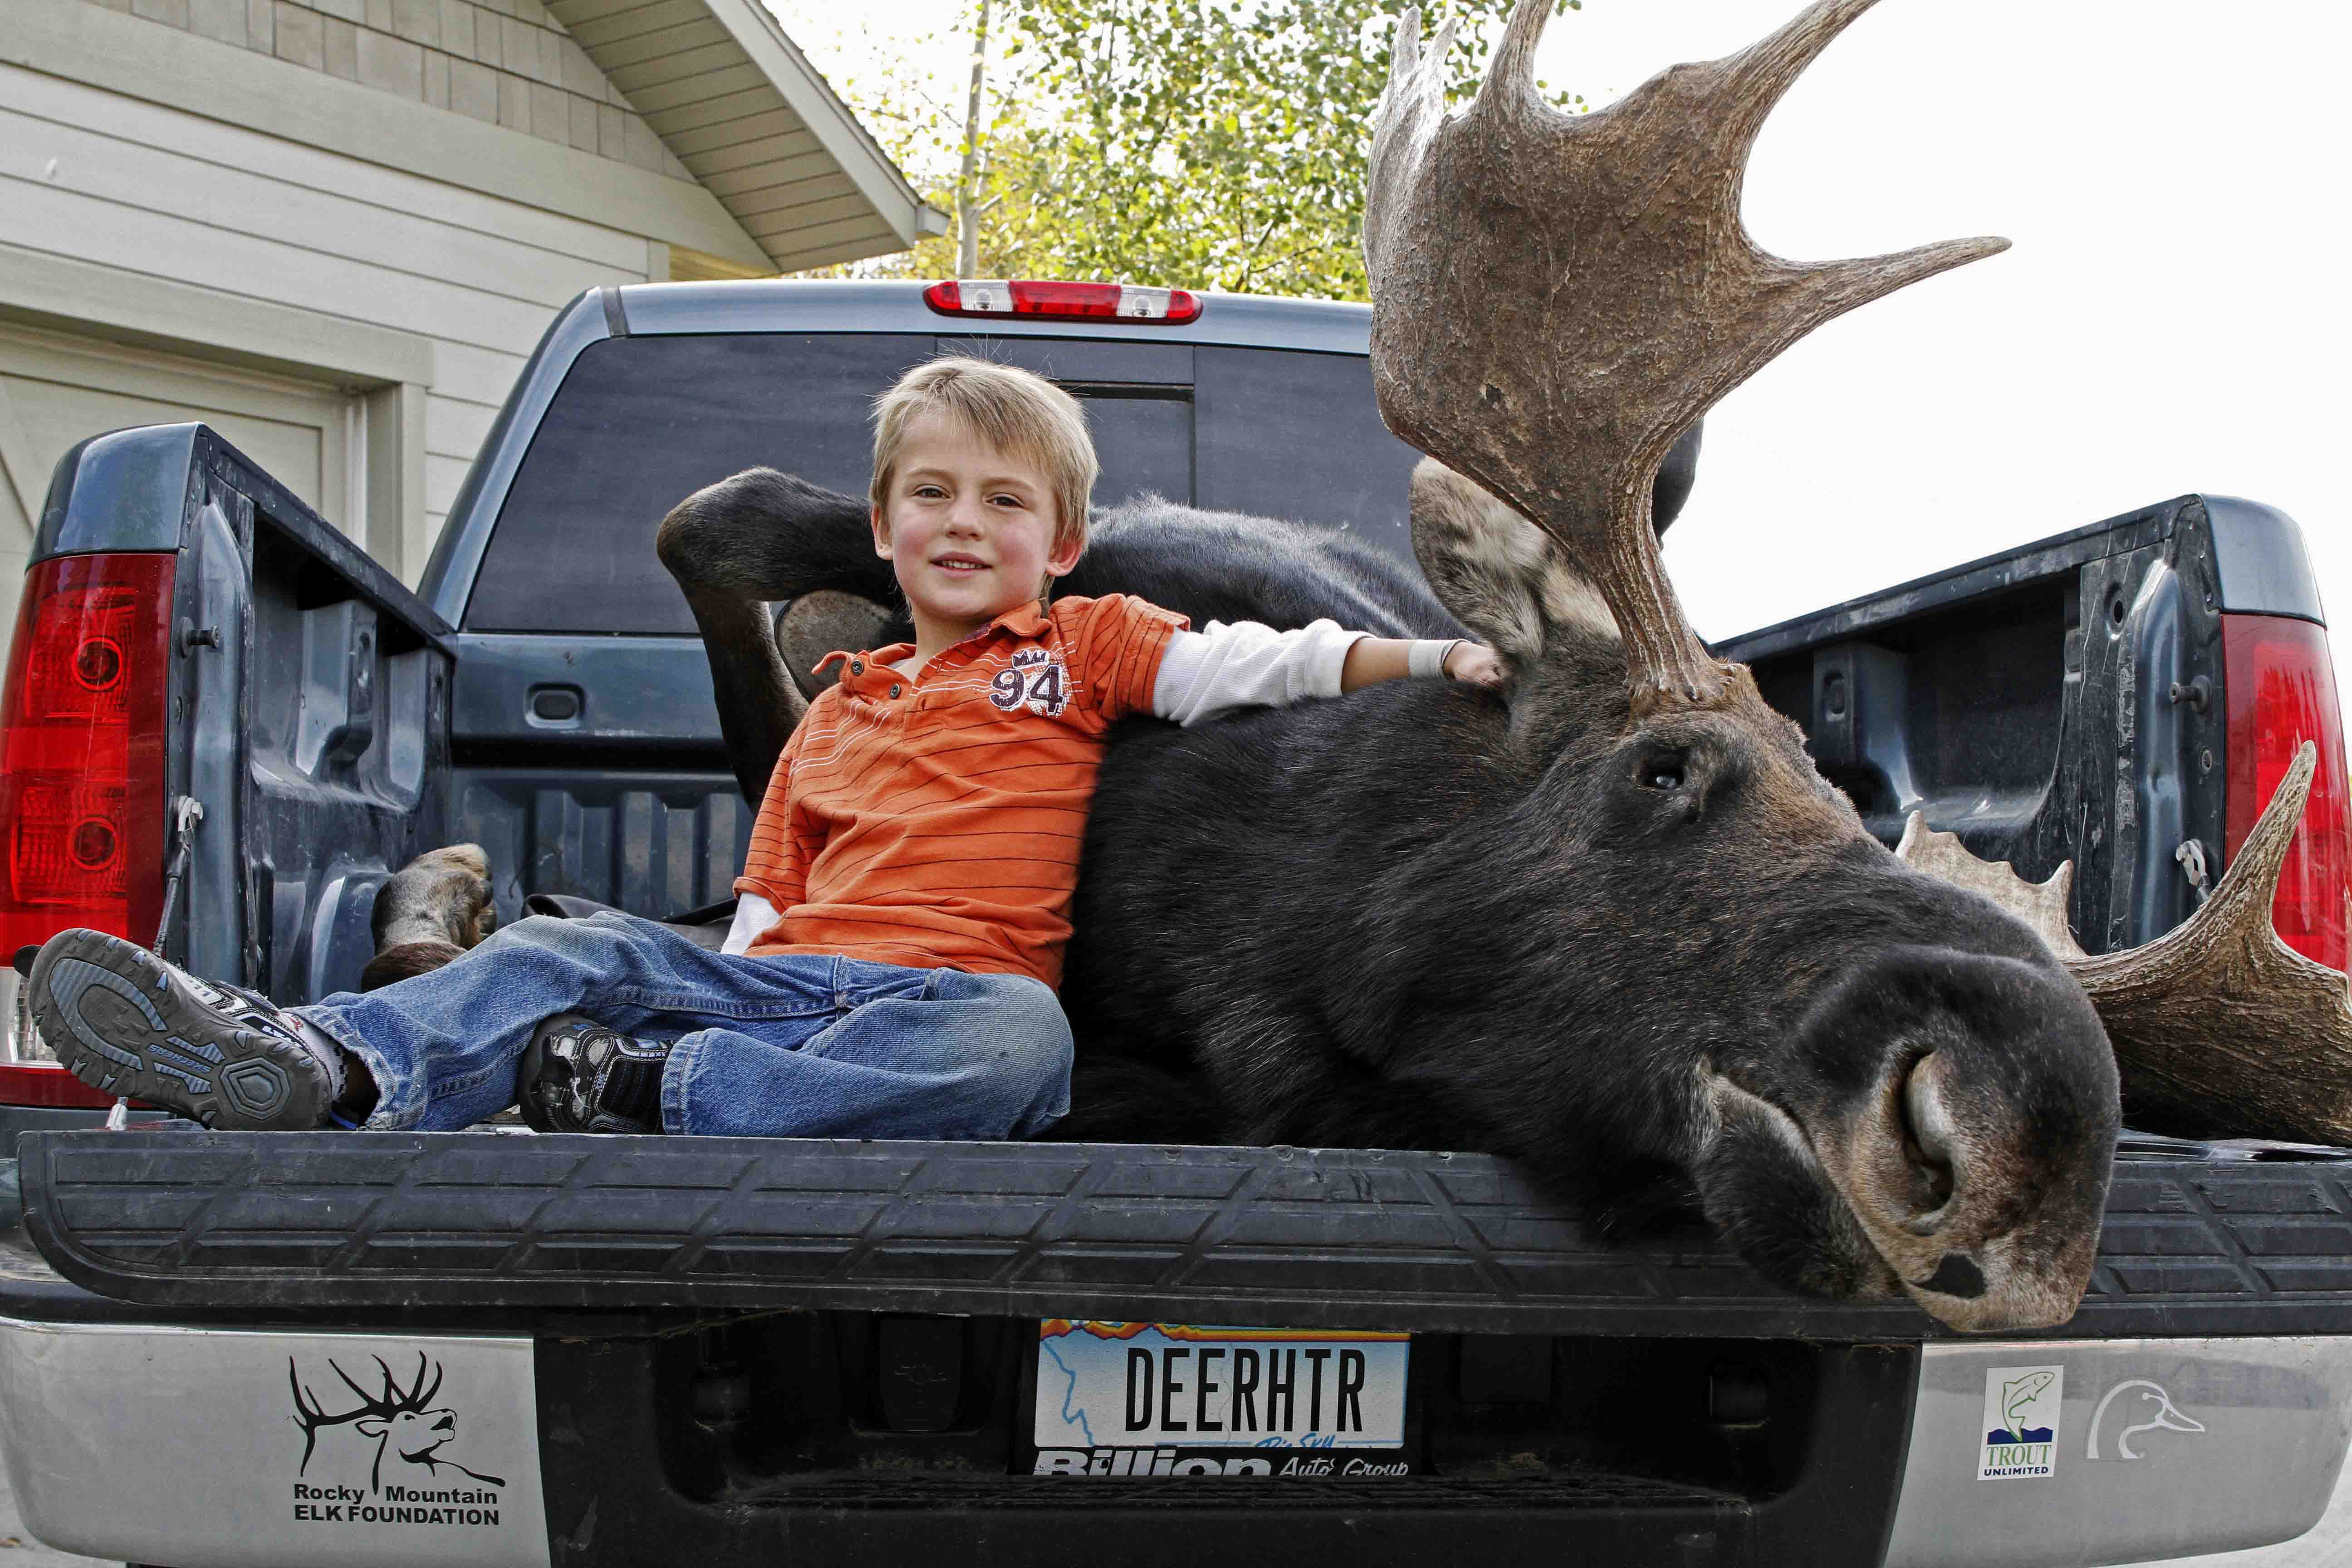 10 Mistakes Adults Make When Hunting With Kids Big Game To Shoot A Deer Rifle Diagram I Have Two Of These Rifles And Realtree Camo